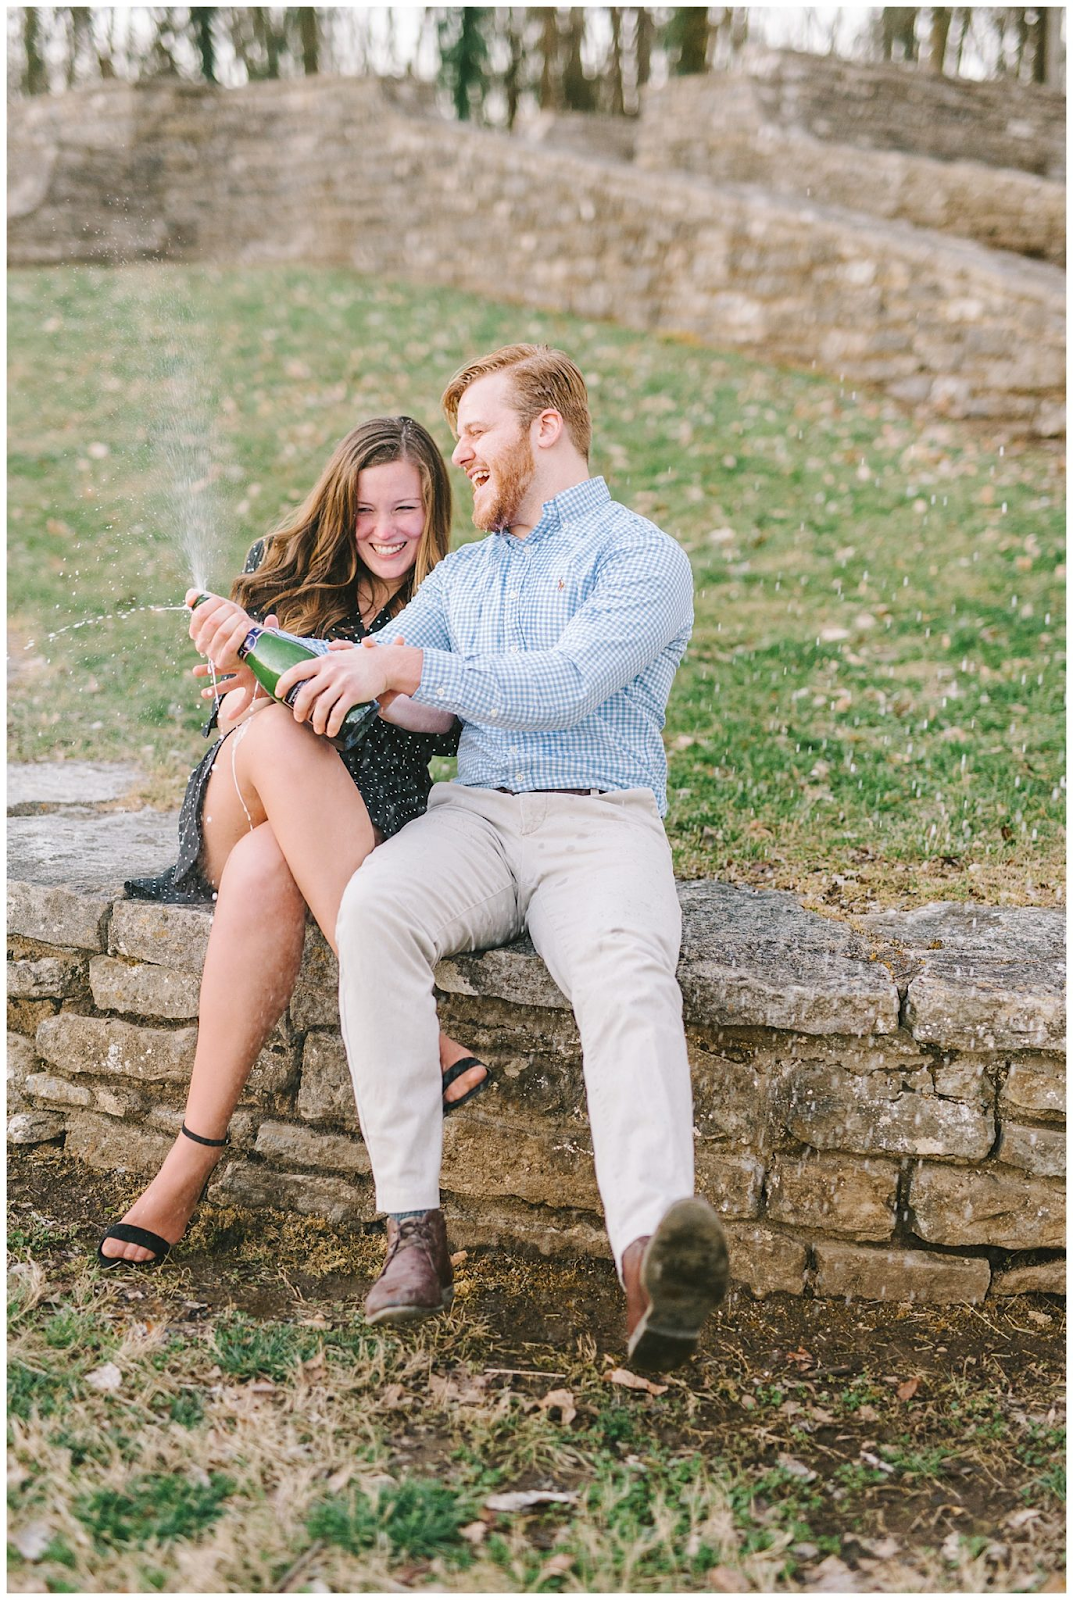 Percy Warner Stairs: The Best Nashville Engagement Session Locations from Kéra Photography featured on Nashville Bride Guide